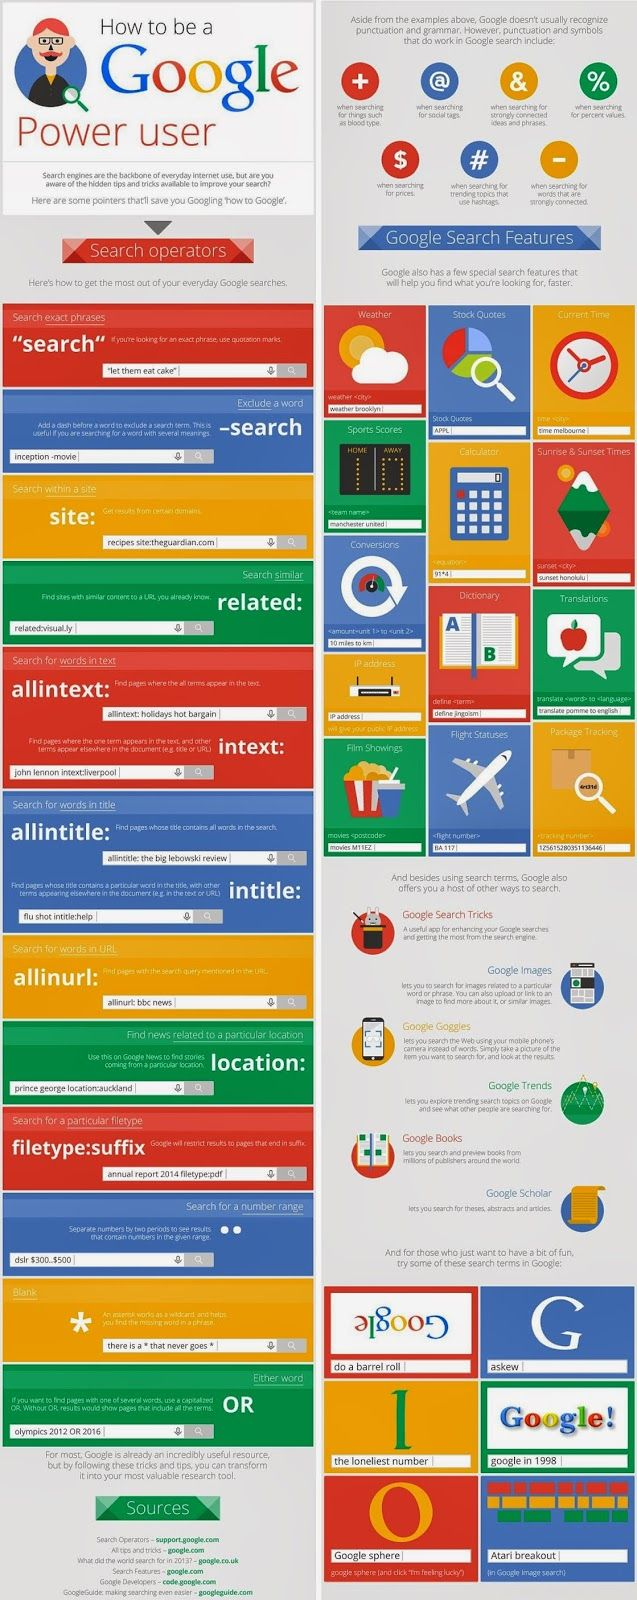 Educational Technology Guy: Infographic with Google Search Tips